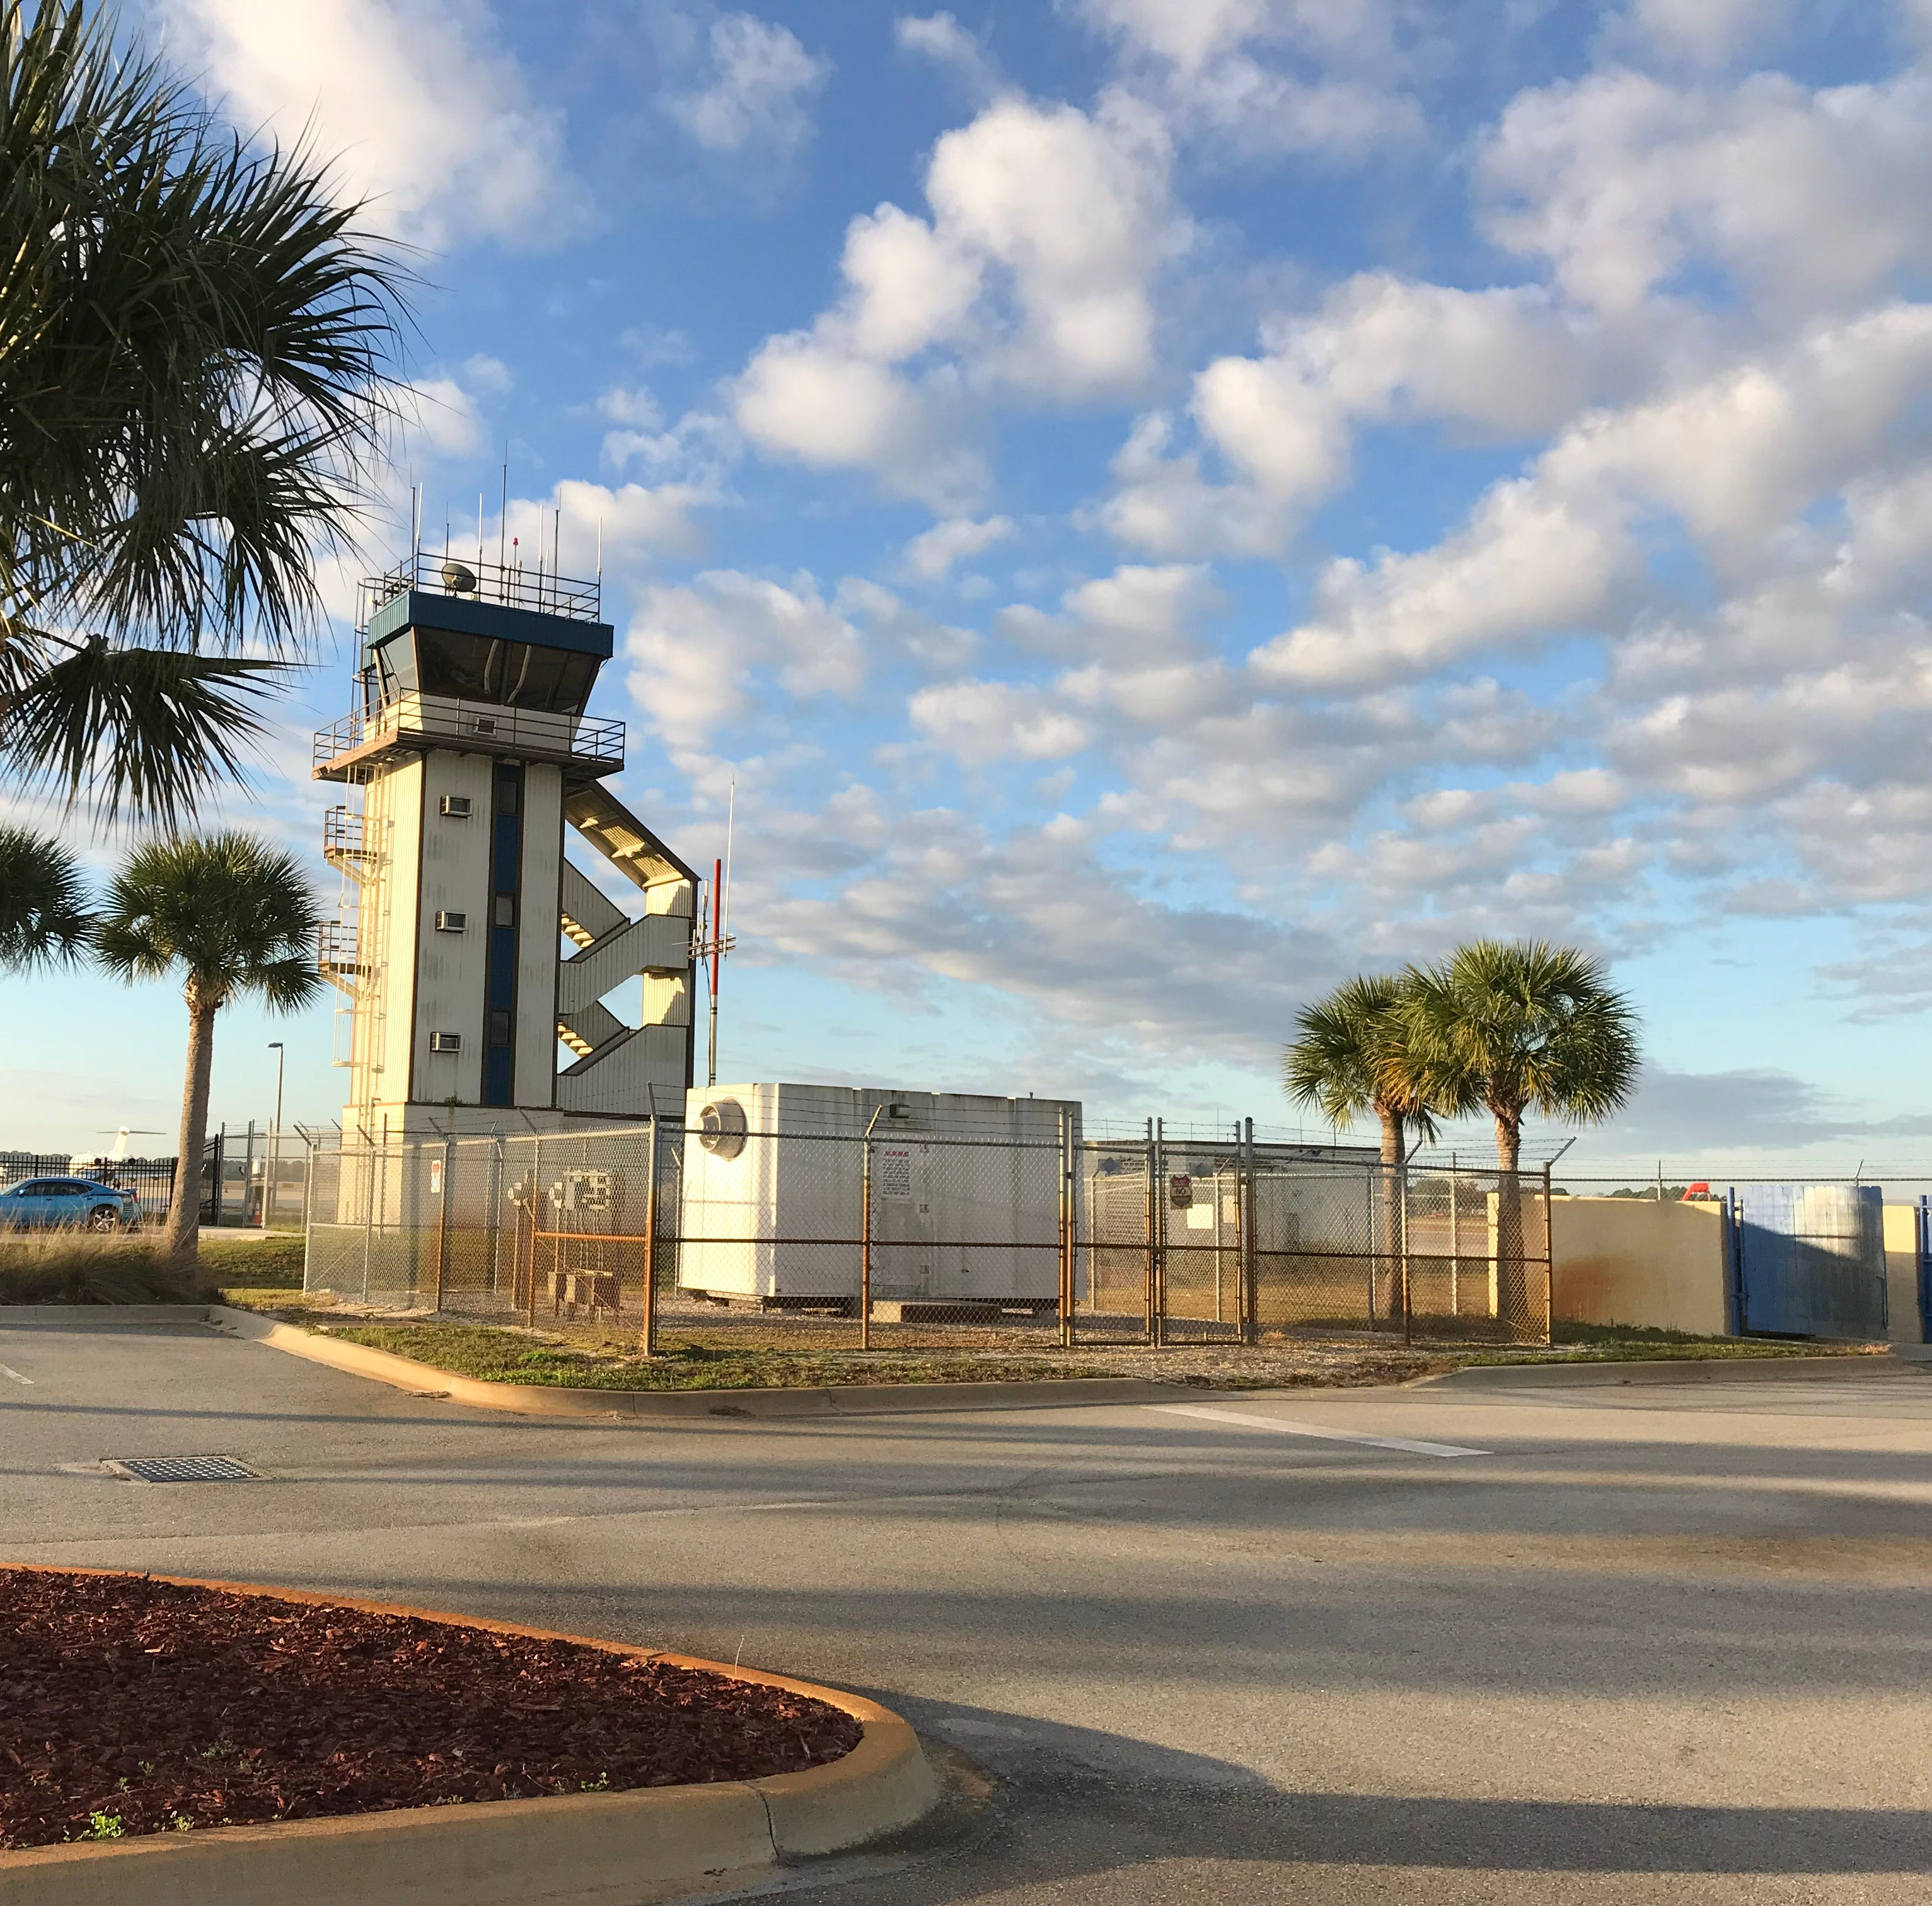 After 2 TICO Airport employees were forced to resign, board member wants CEO's resignation